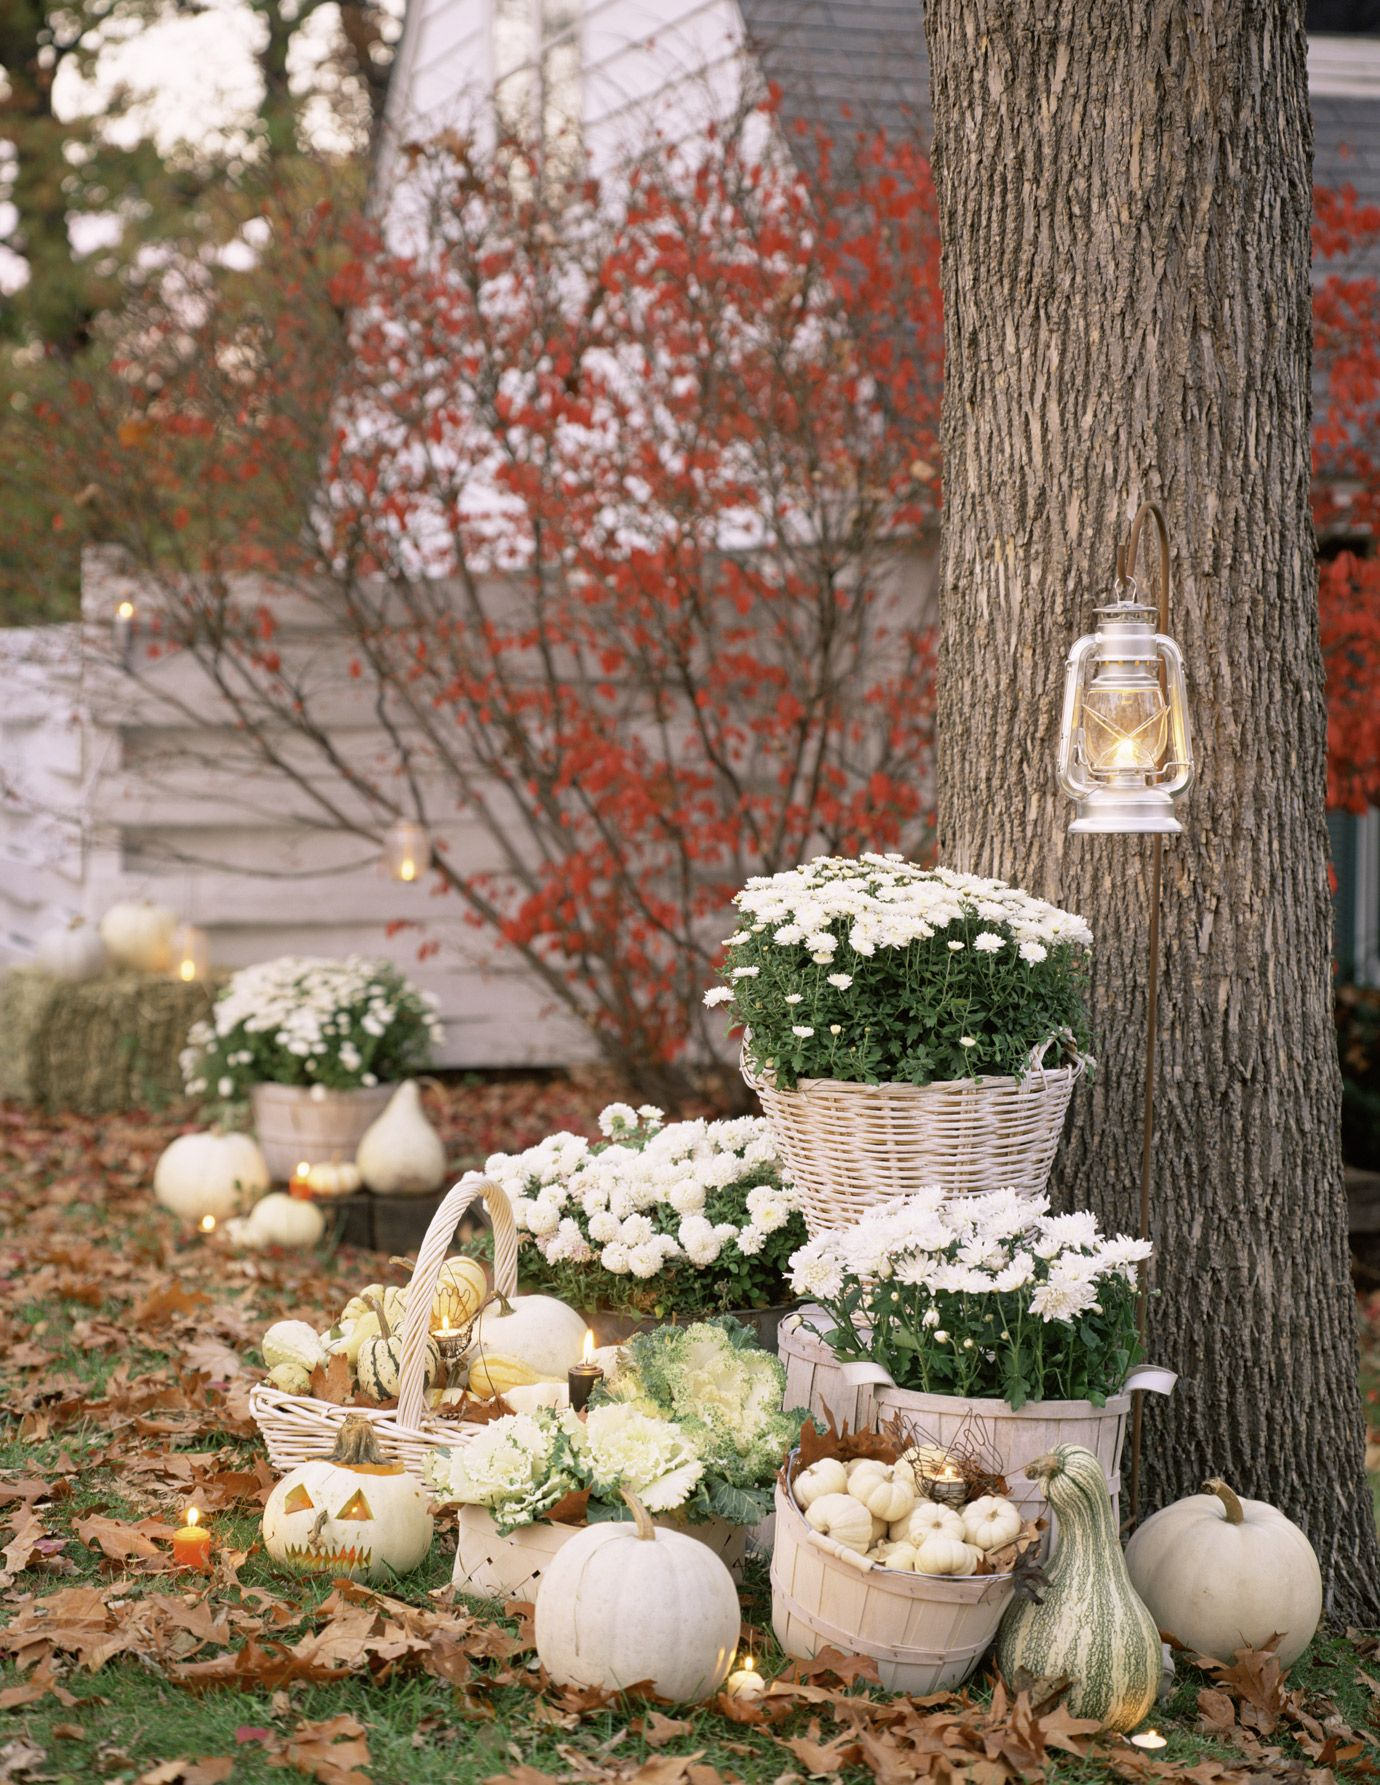 11 Elegant Ways To Decorate With Pumpkins This Fall White Pumpkin Decor Halloween Outdoor Decorations Pumpkin Wedding